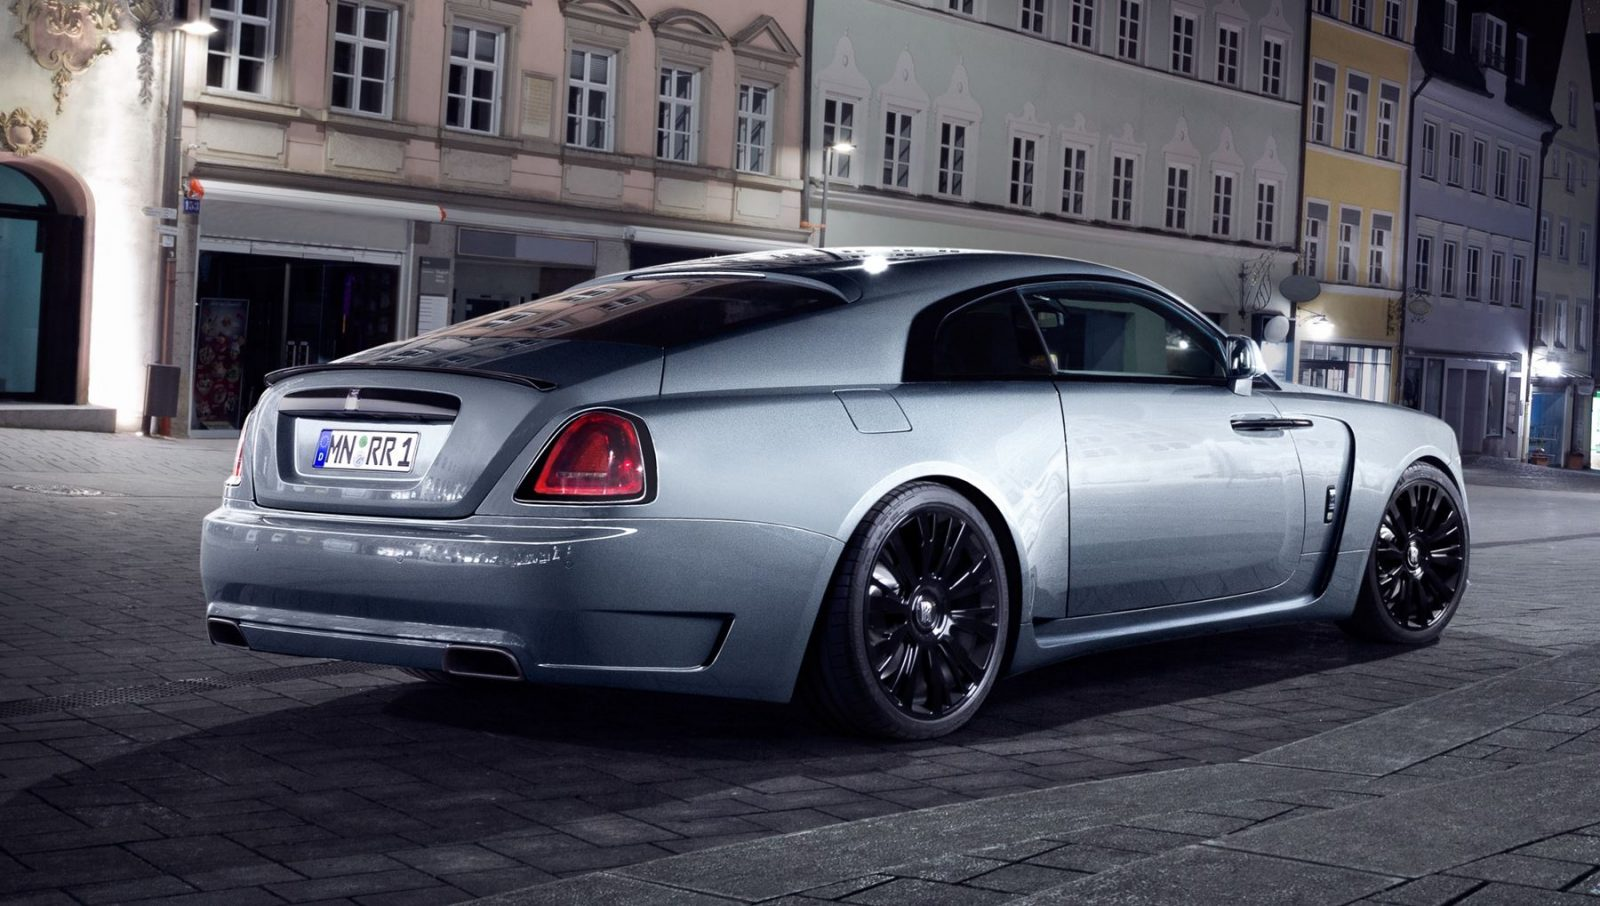 2016 spofec rolls royce wraith overdose 717hp widebody dream. Black Bedroom Furniture Sets. Home Design Ideas